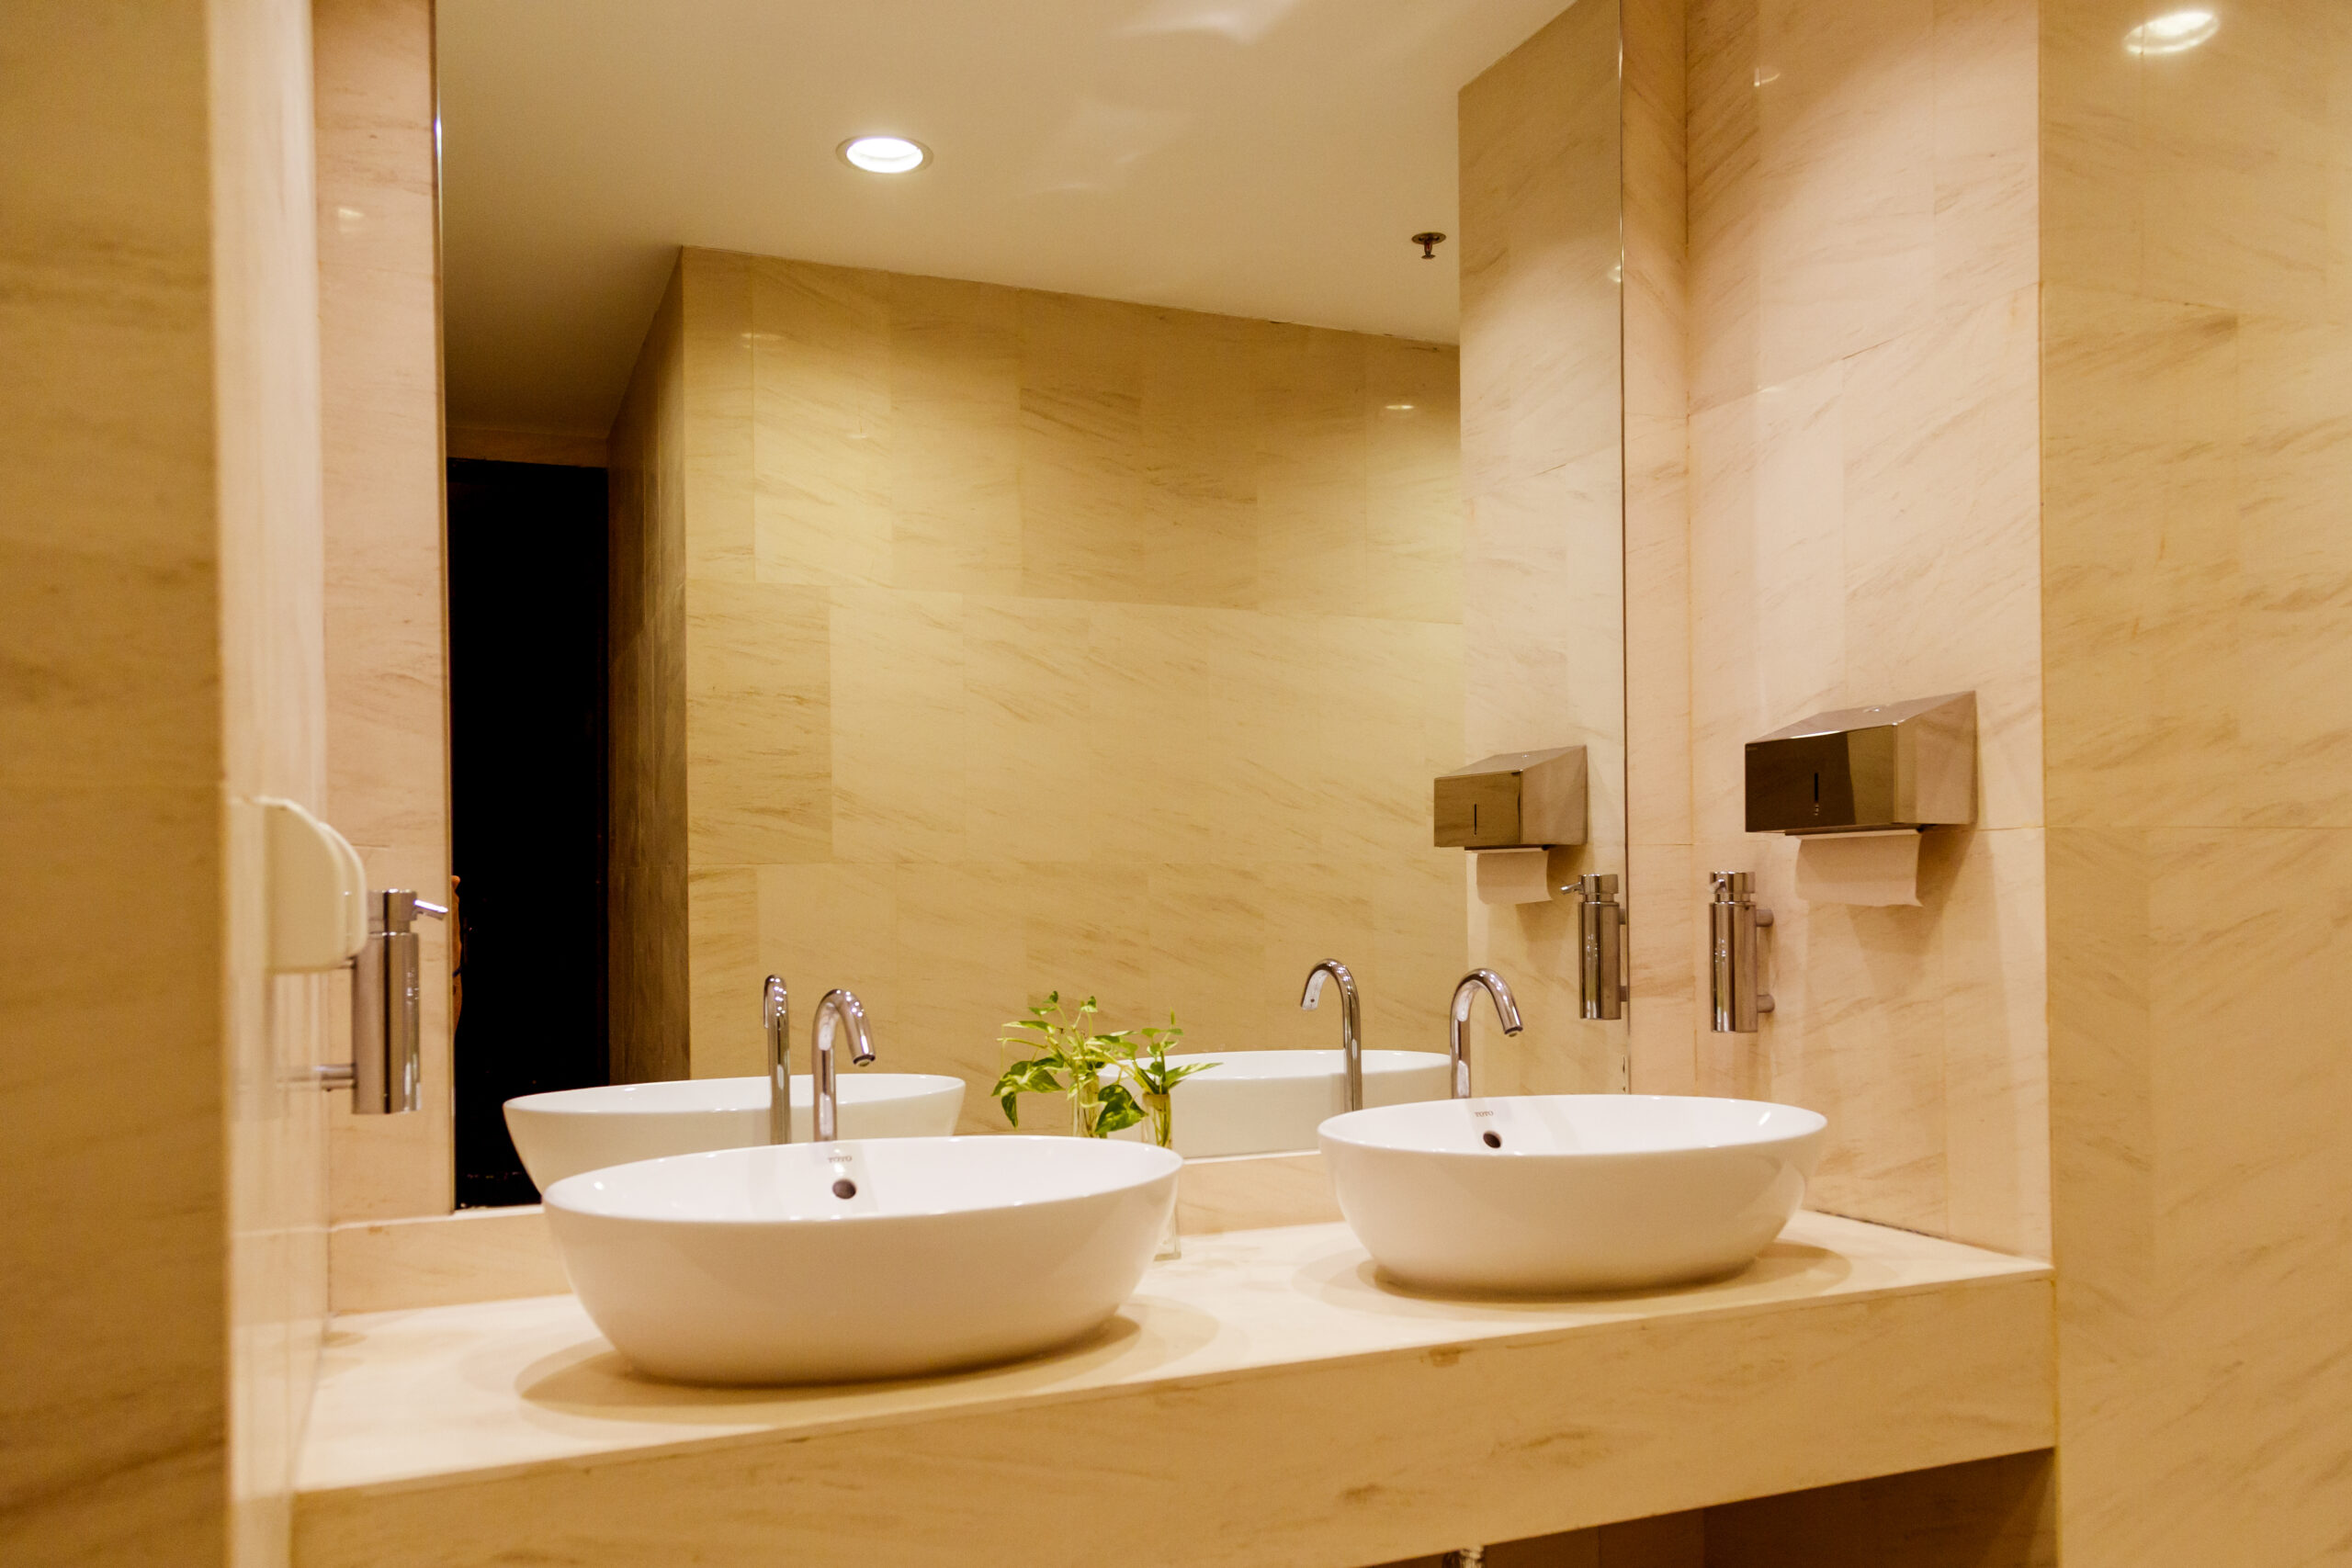 Stylish double bathroom interior